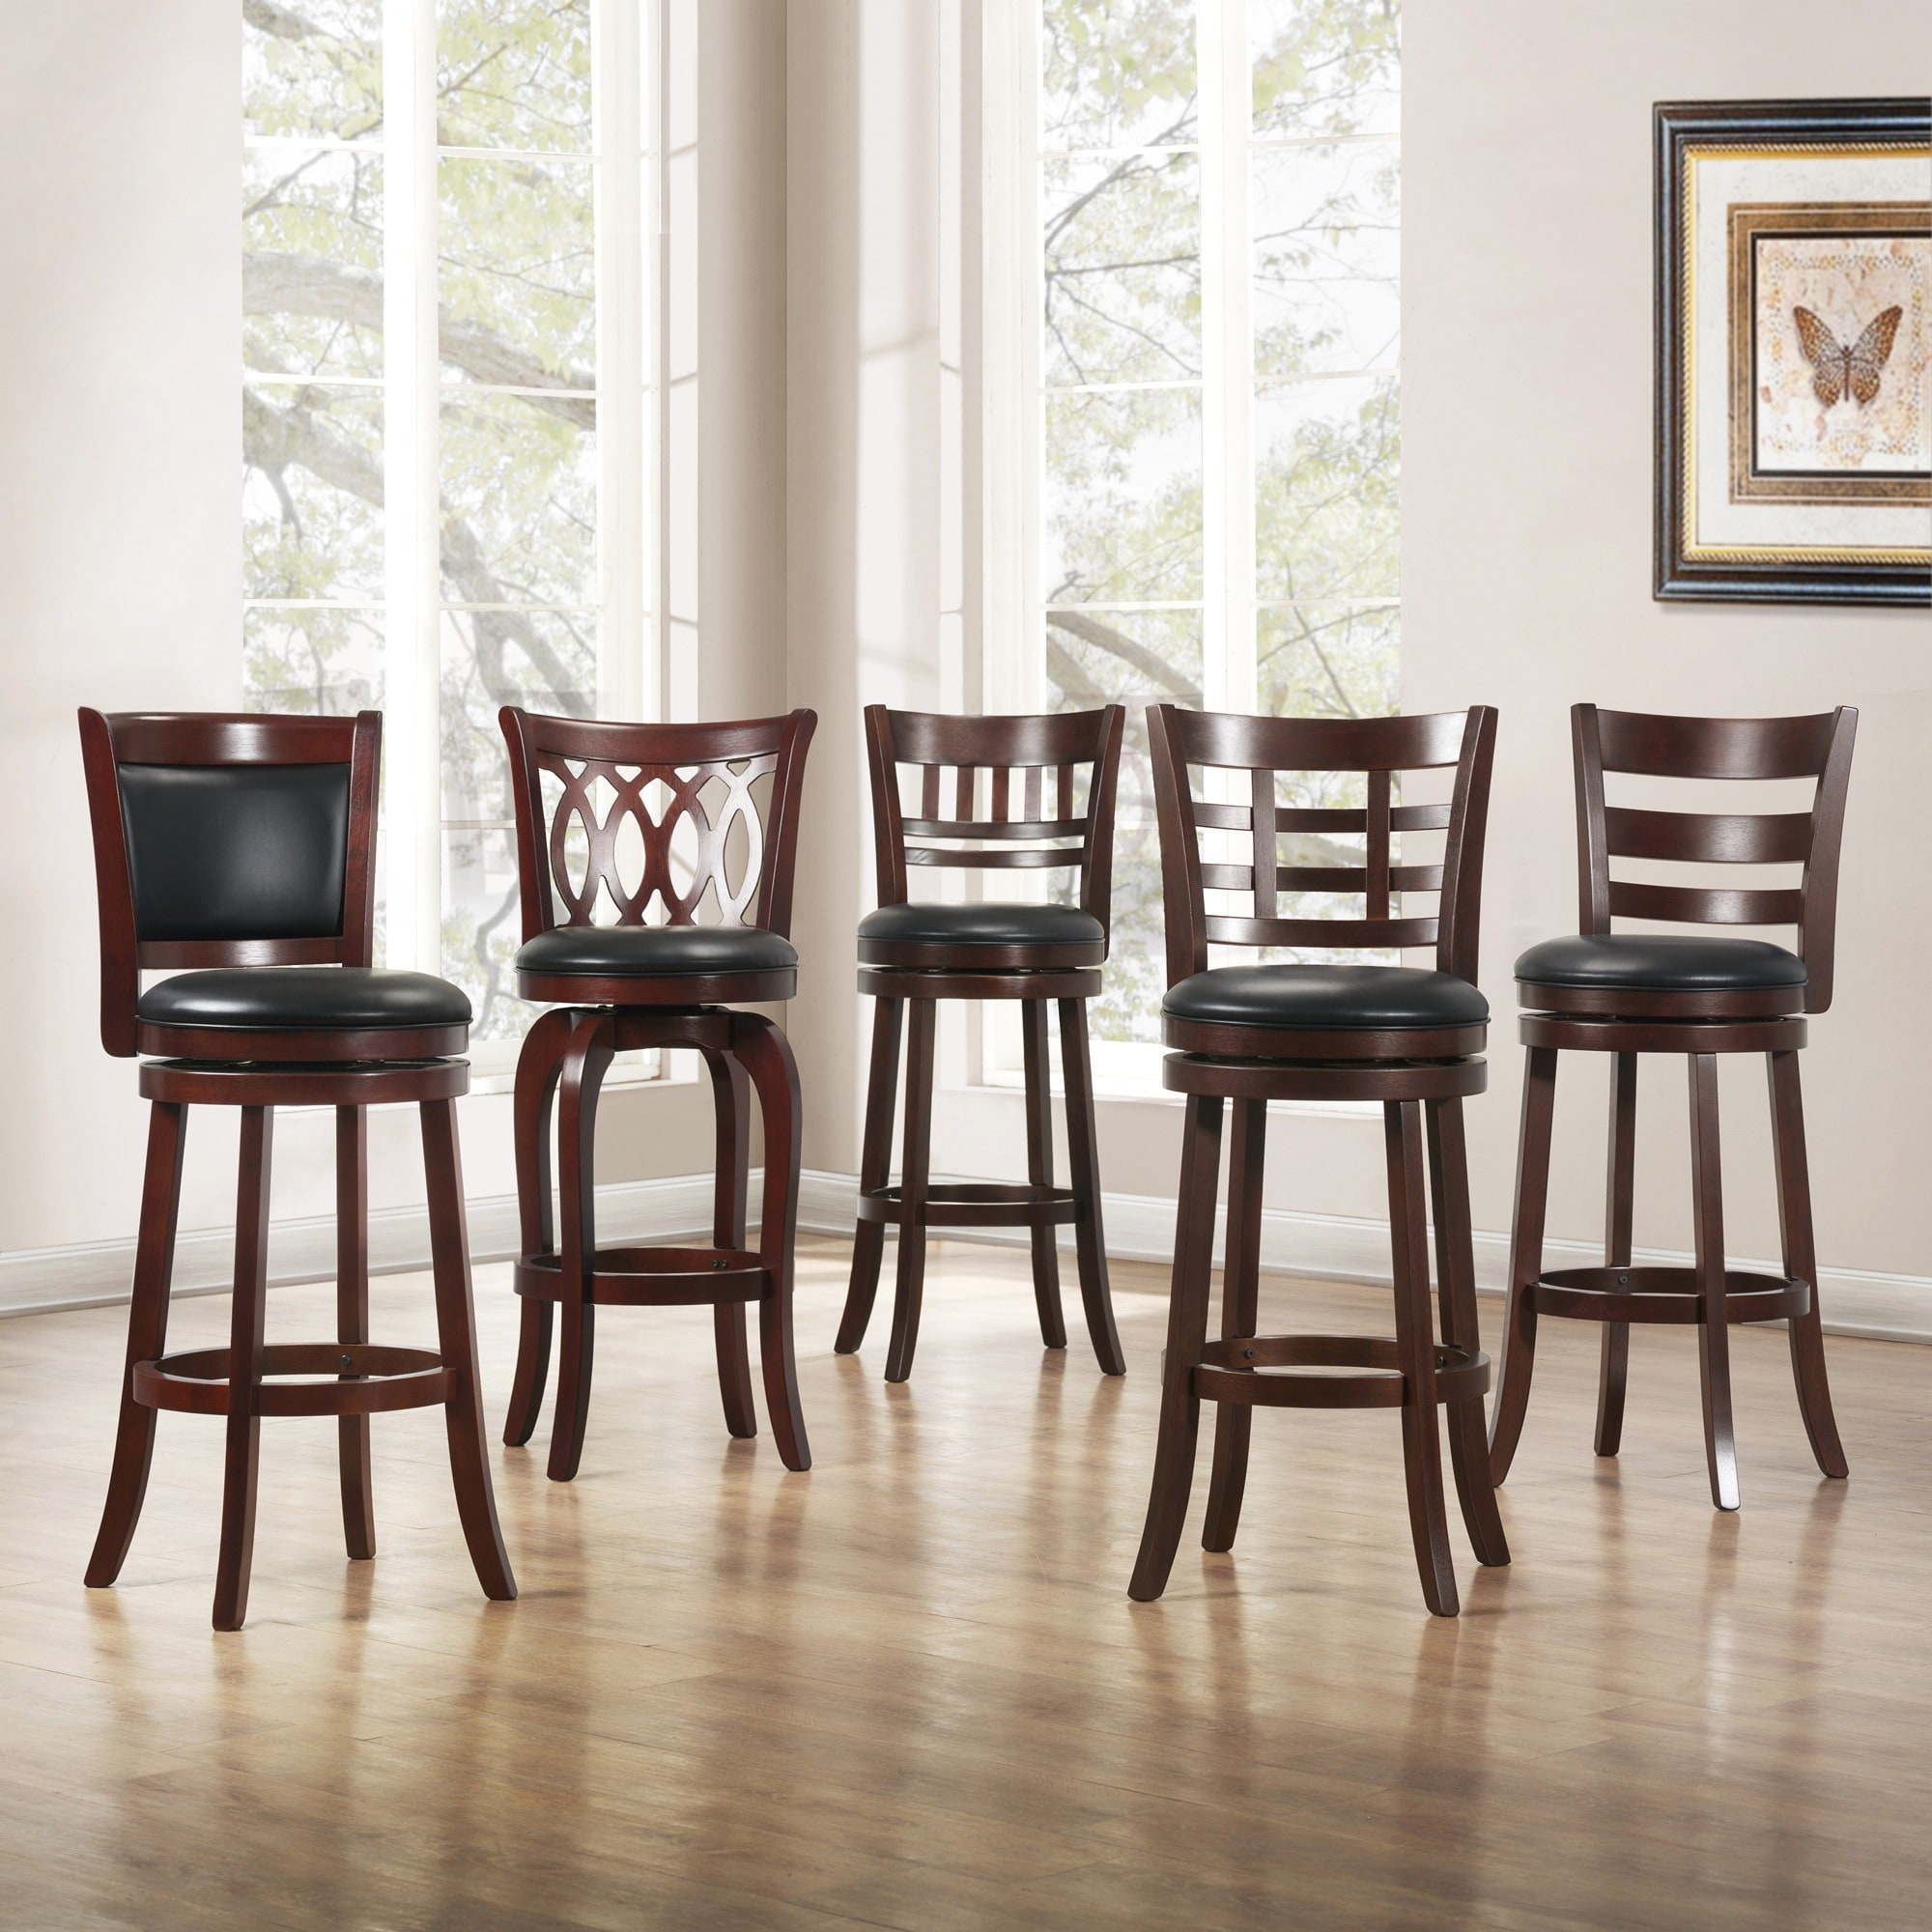 Counter Stools Overstock: TRIBECCA HOME Verona Cherry Swivel 29-inch Barstool